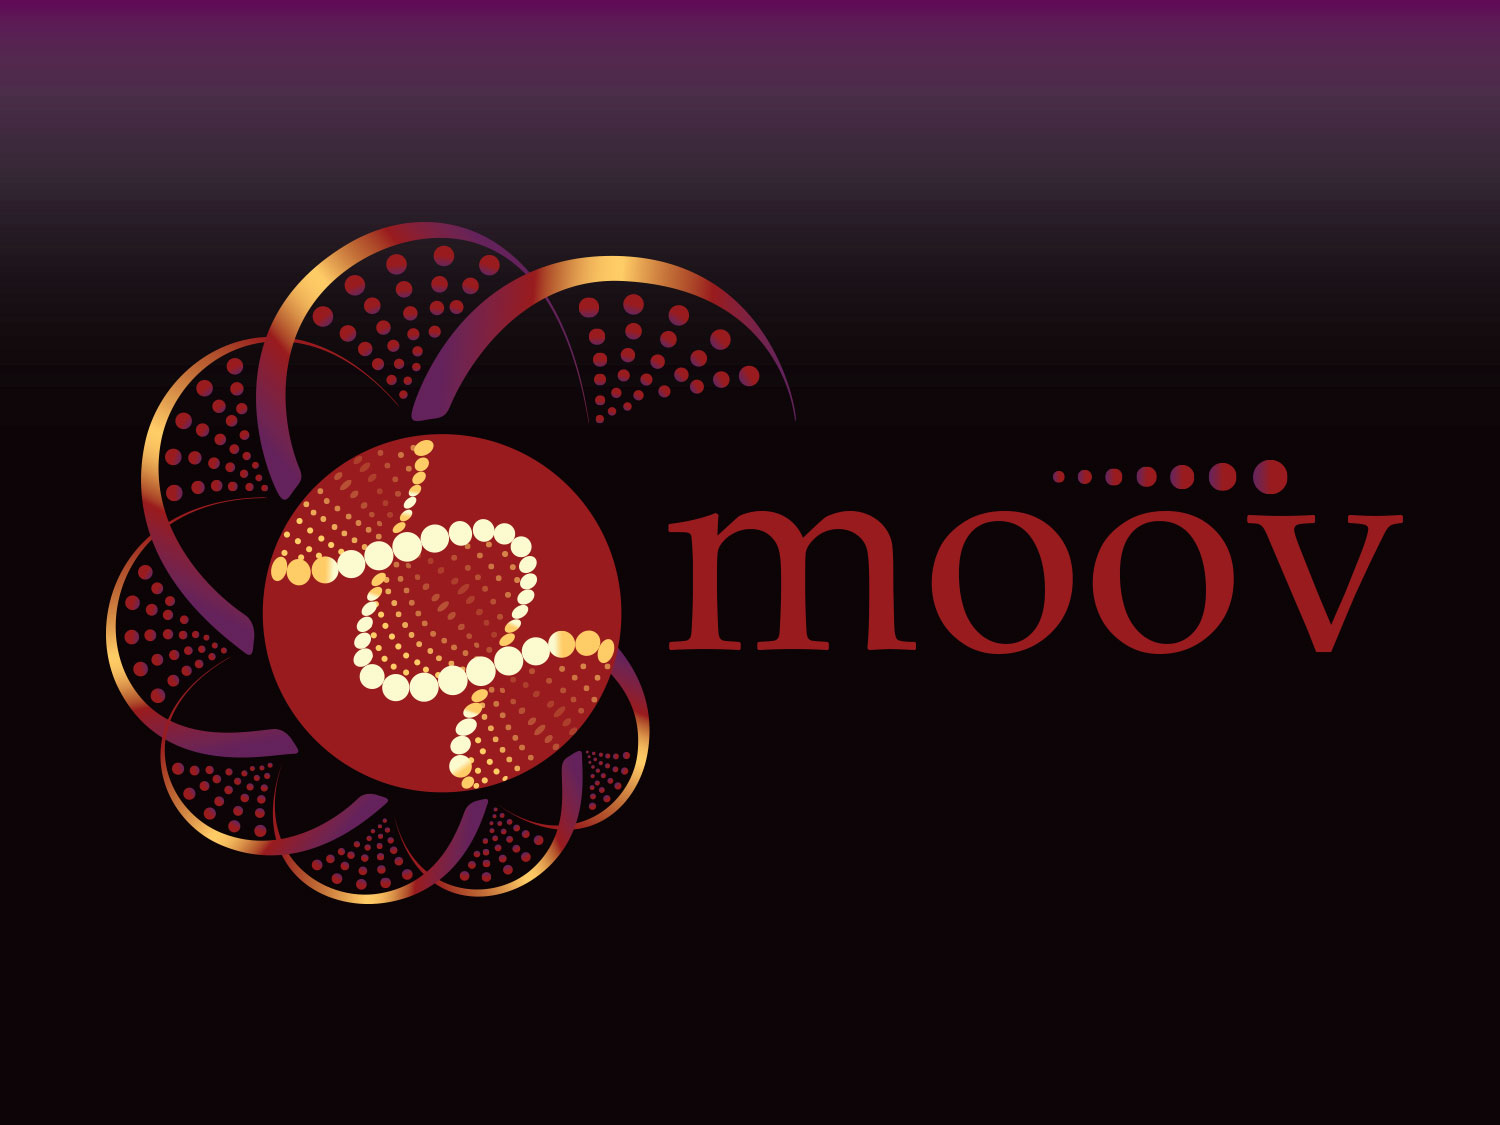 Graphics, Branding & Corporate ID: moov logo